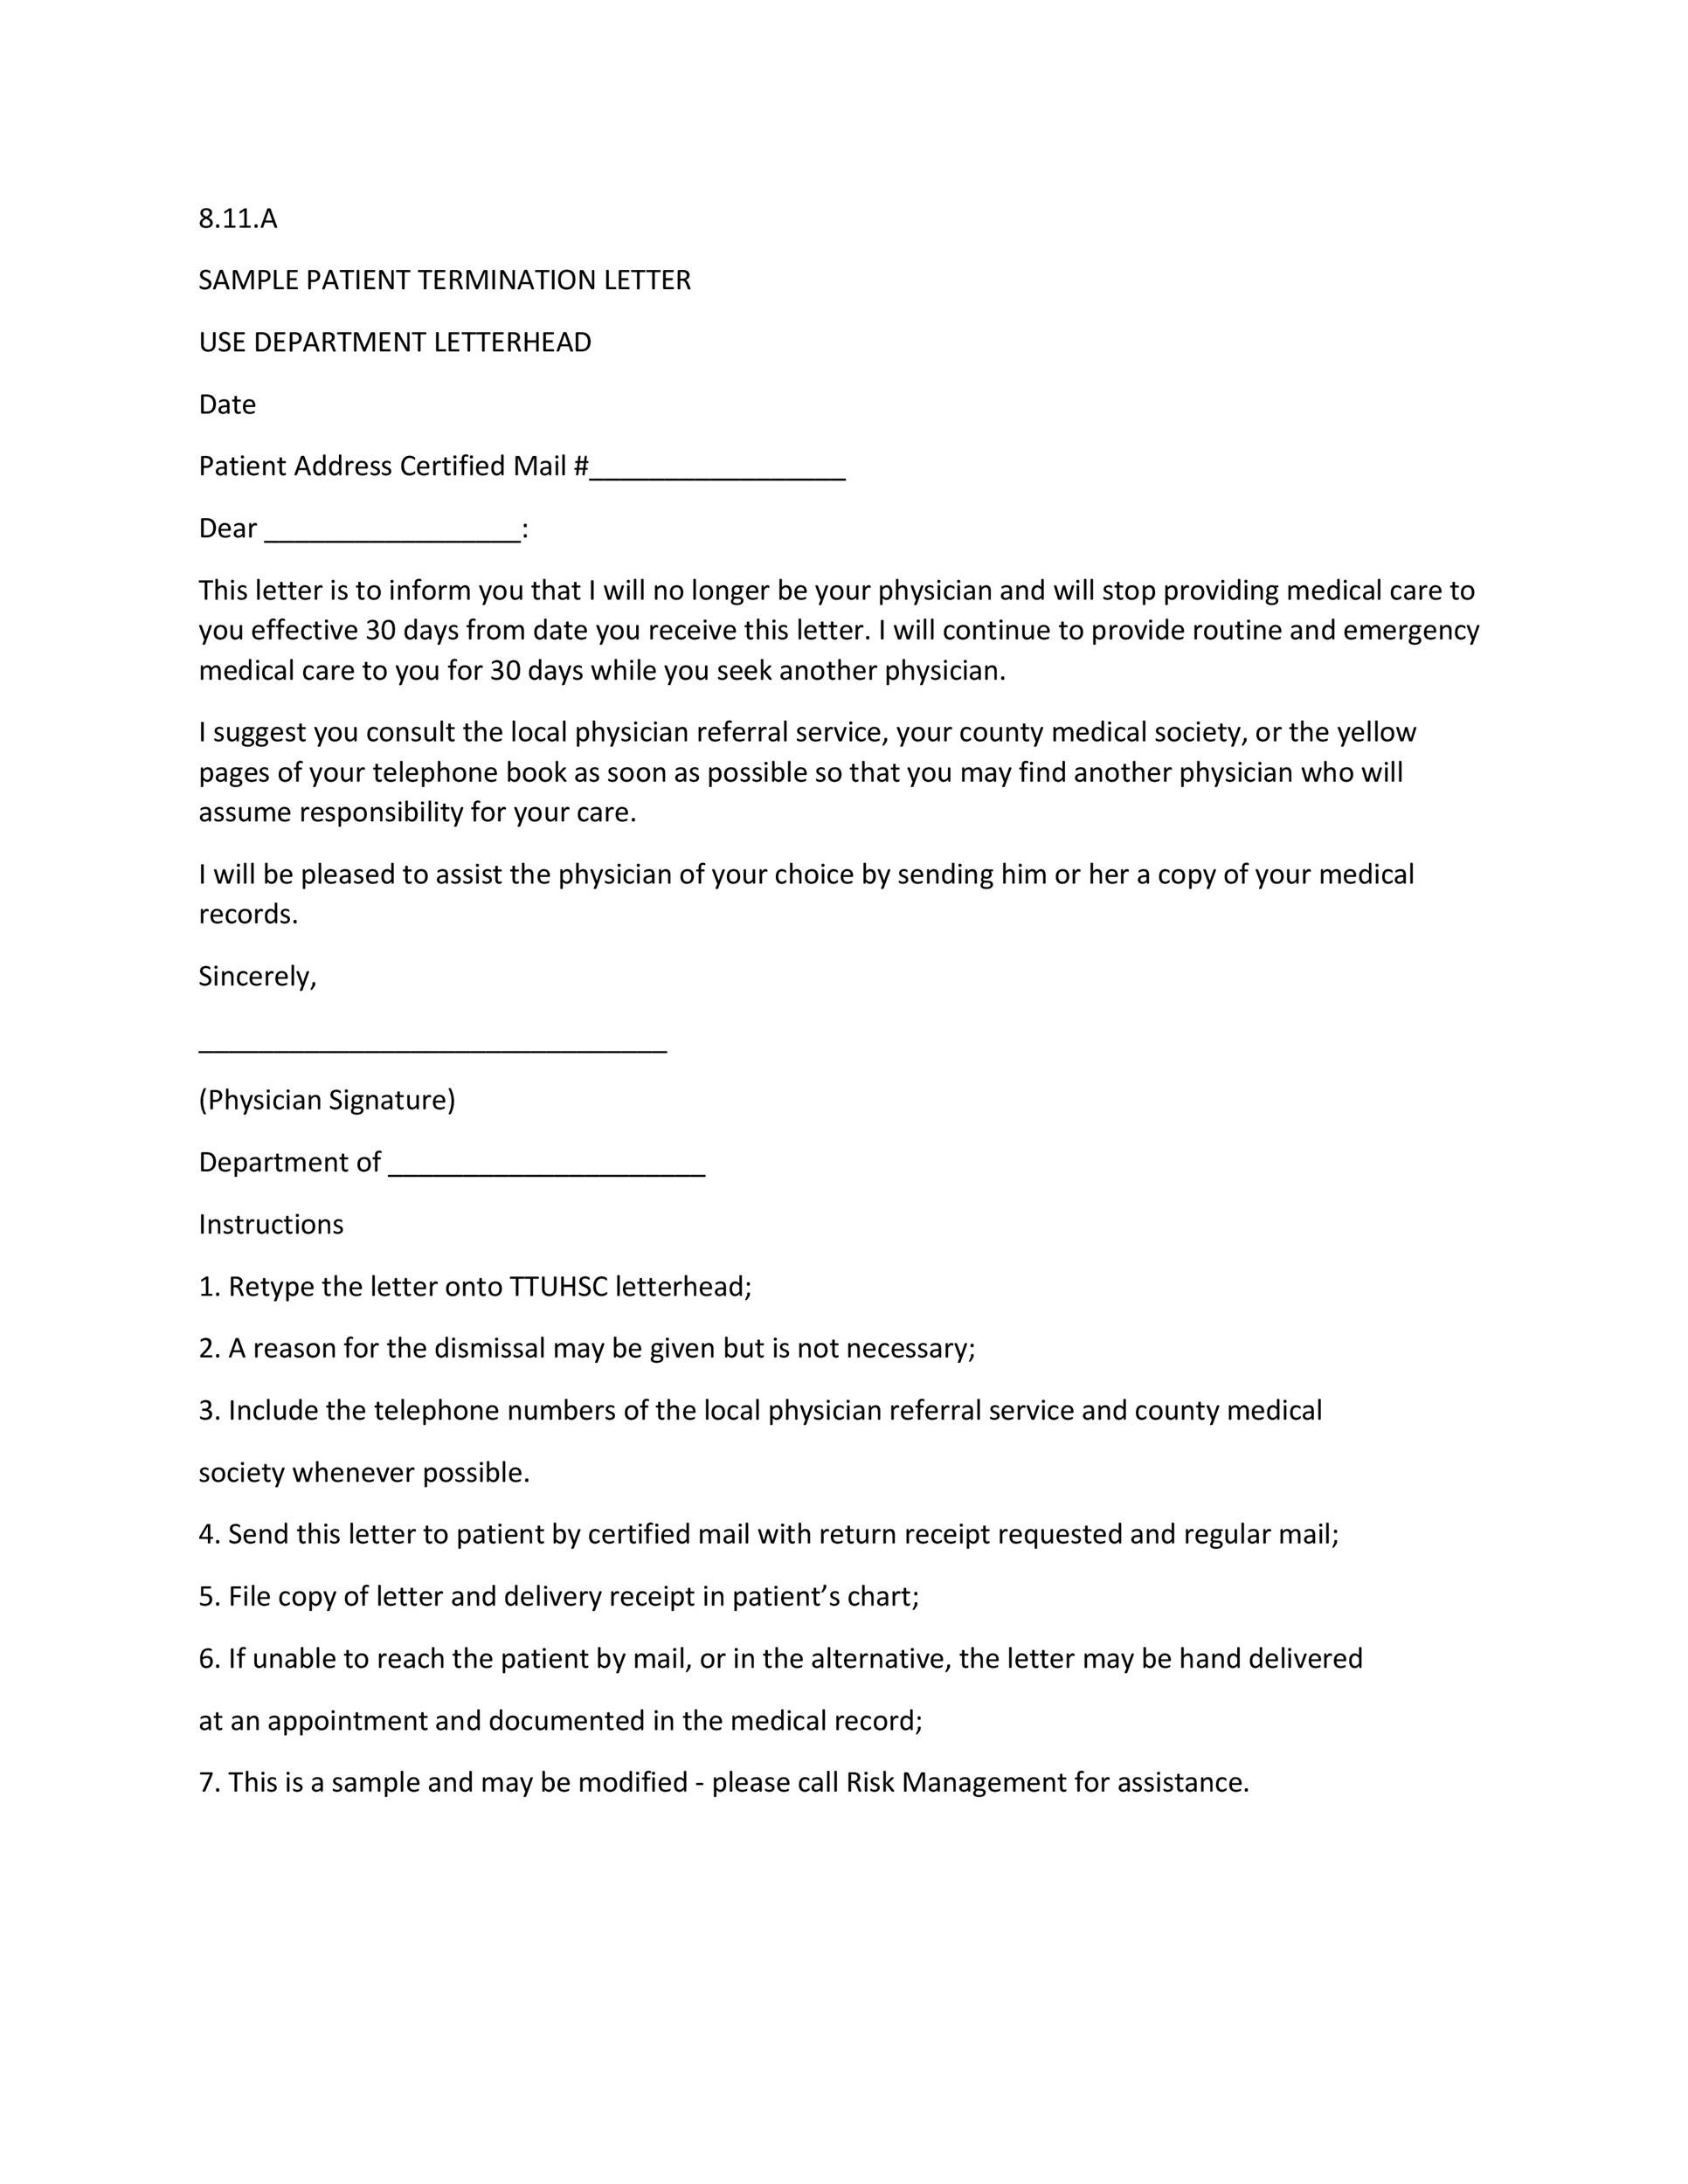 35 Perfect Termination Letter Samples Lease, Employee, Contract